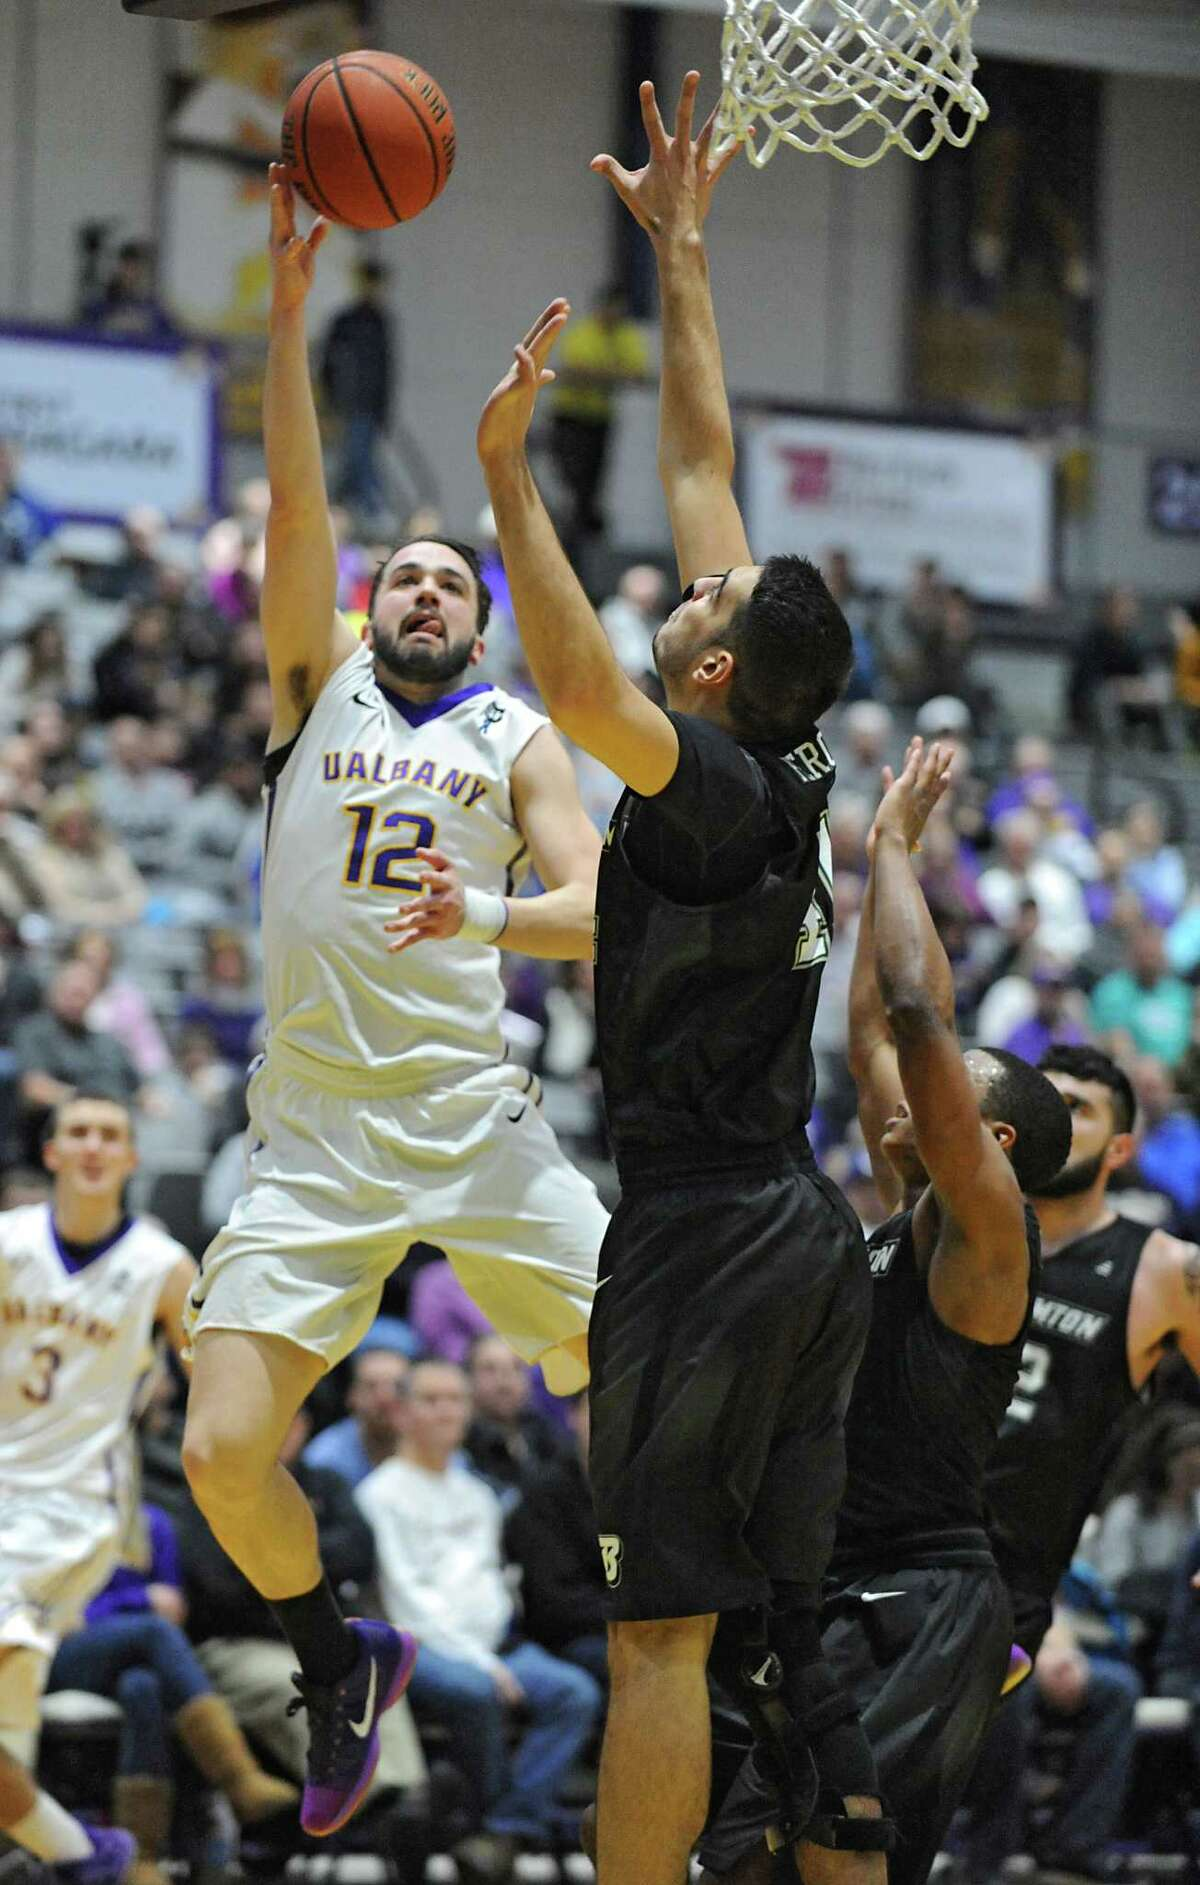 UAlbany's Peter Hooley is fouled as he sinks this two pointer during an America East Conference basketball game against Binghamton at the SEFCU Arena on Monday, Jan. 18, 2016 in Albany, N.Y. (Lori Van Buren / Times Union)